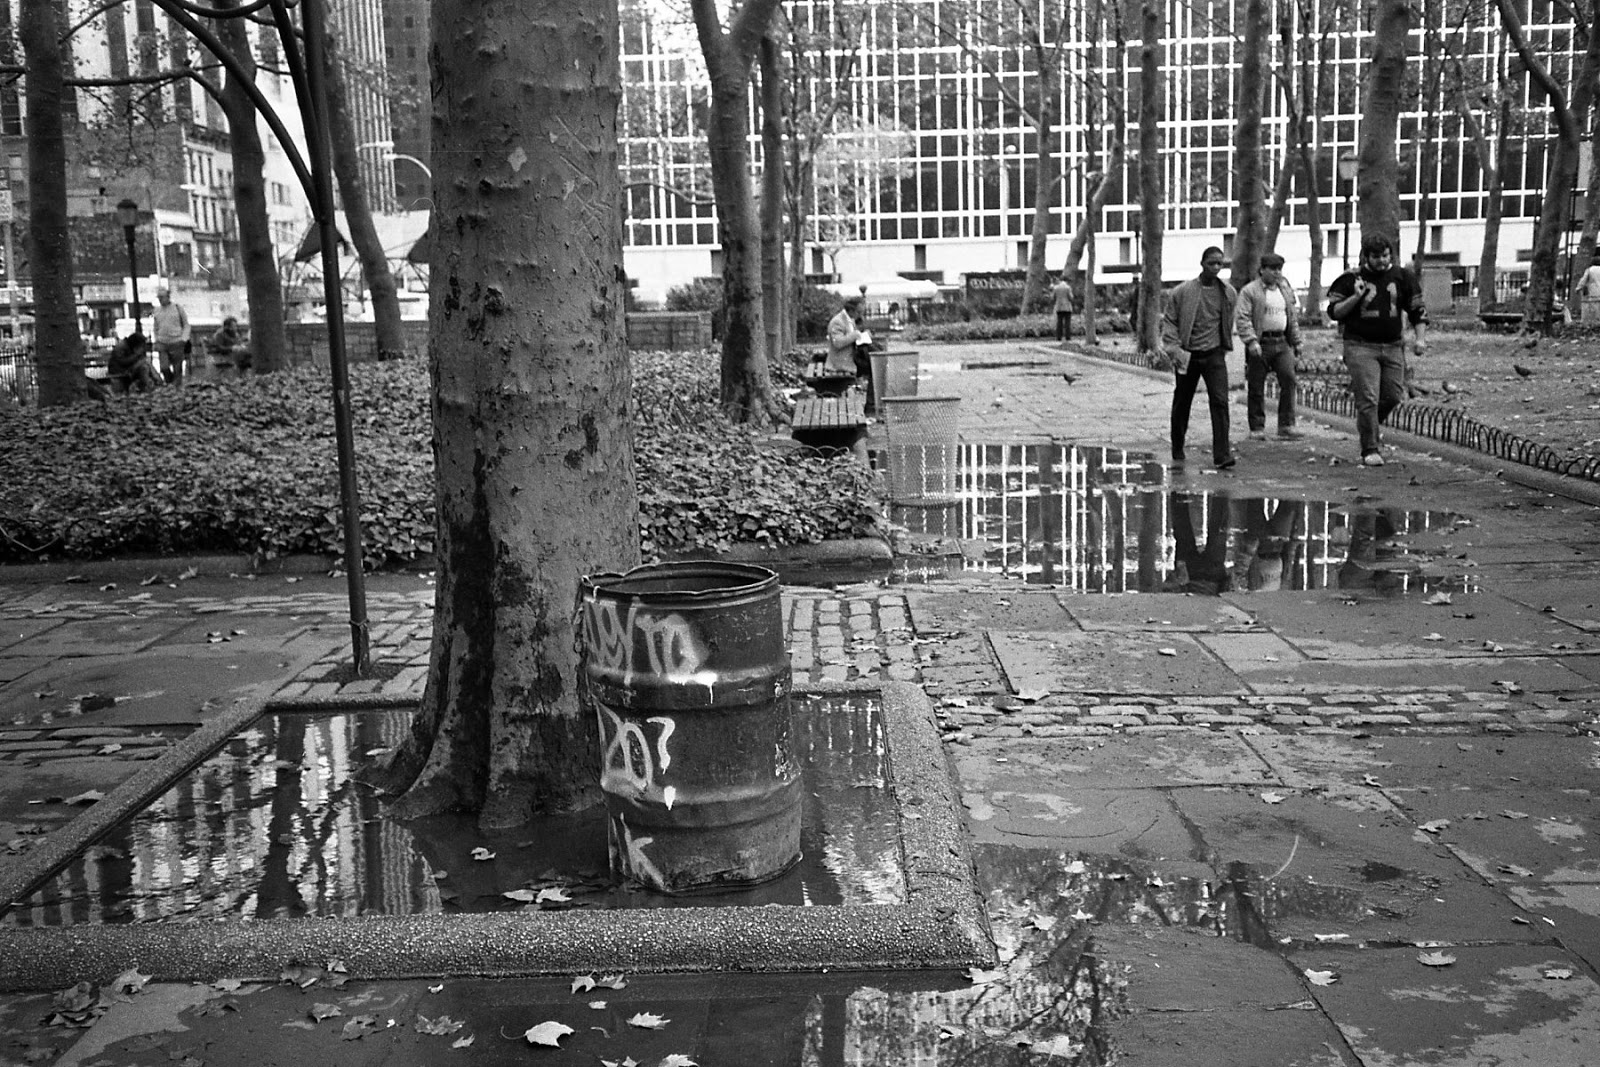 Bryant park blog bryant park name adds value - Social life in small urban spaces model ...